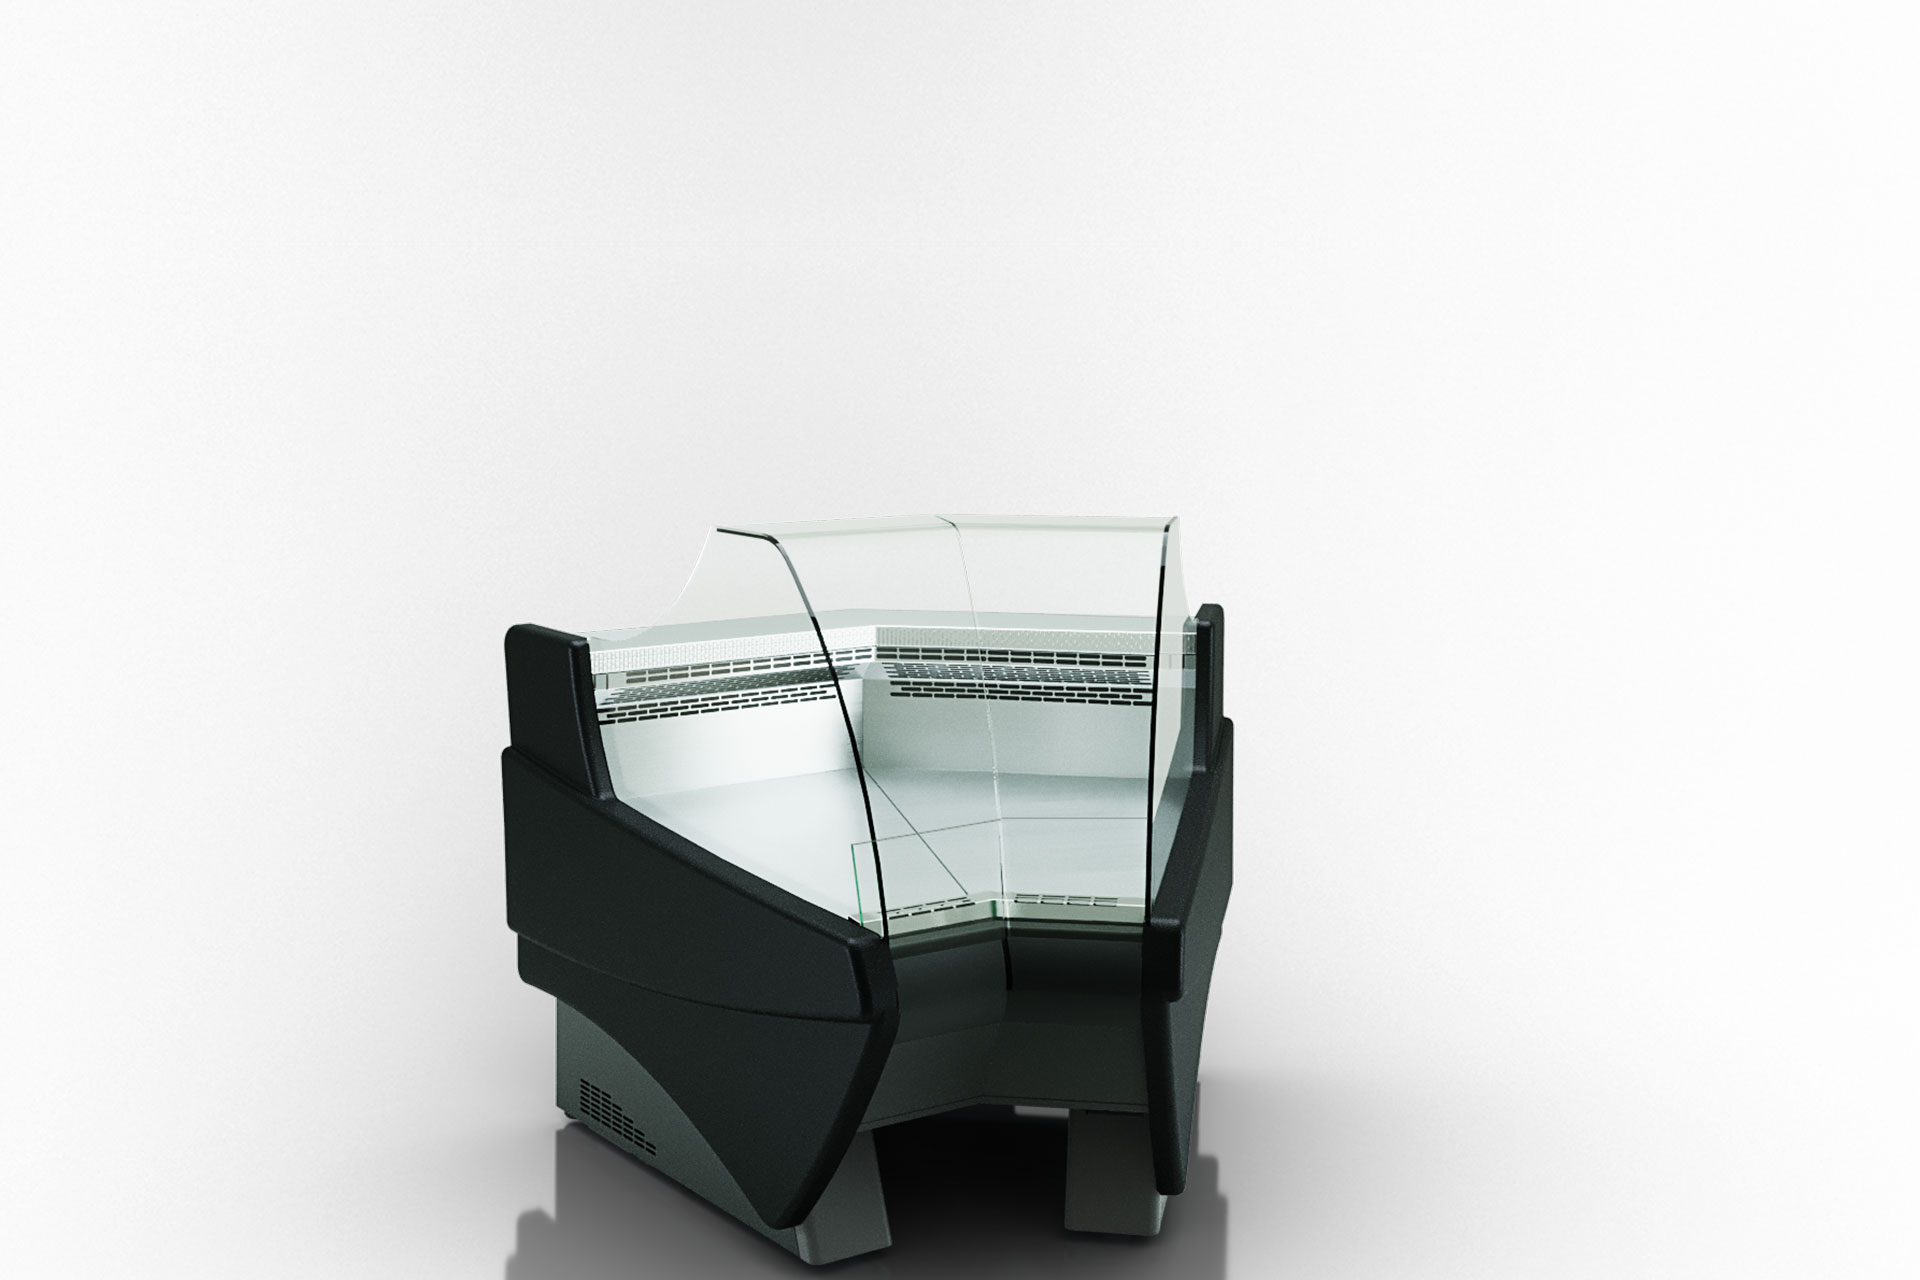 Counter Symphony luxe MG 120 deli T 110-DLM-IS45